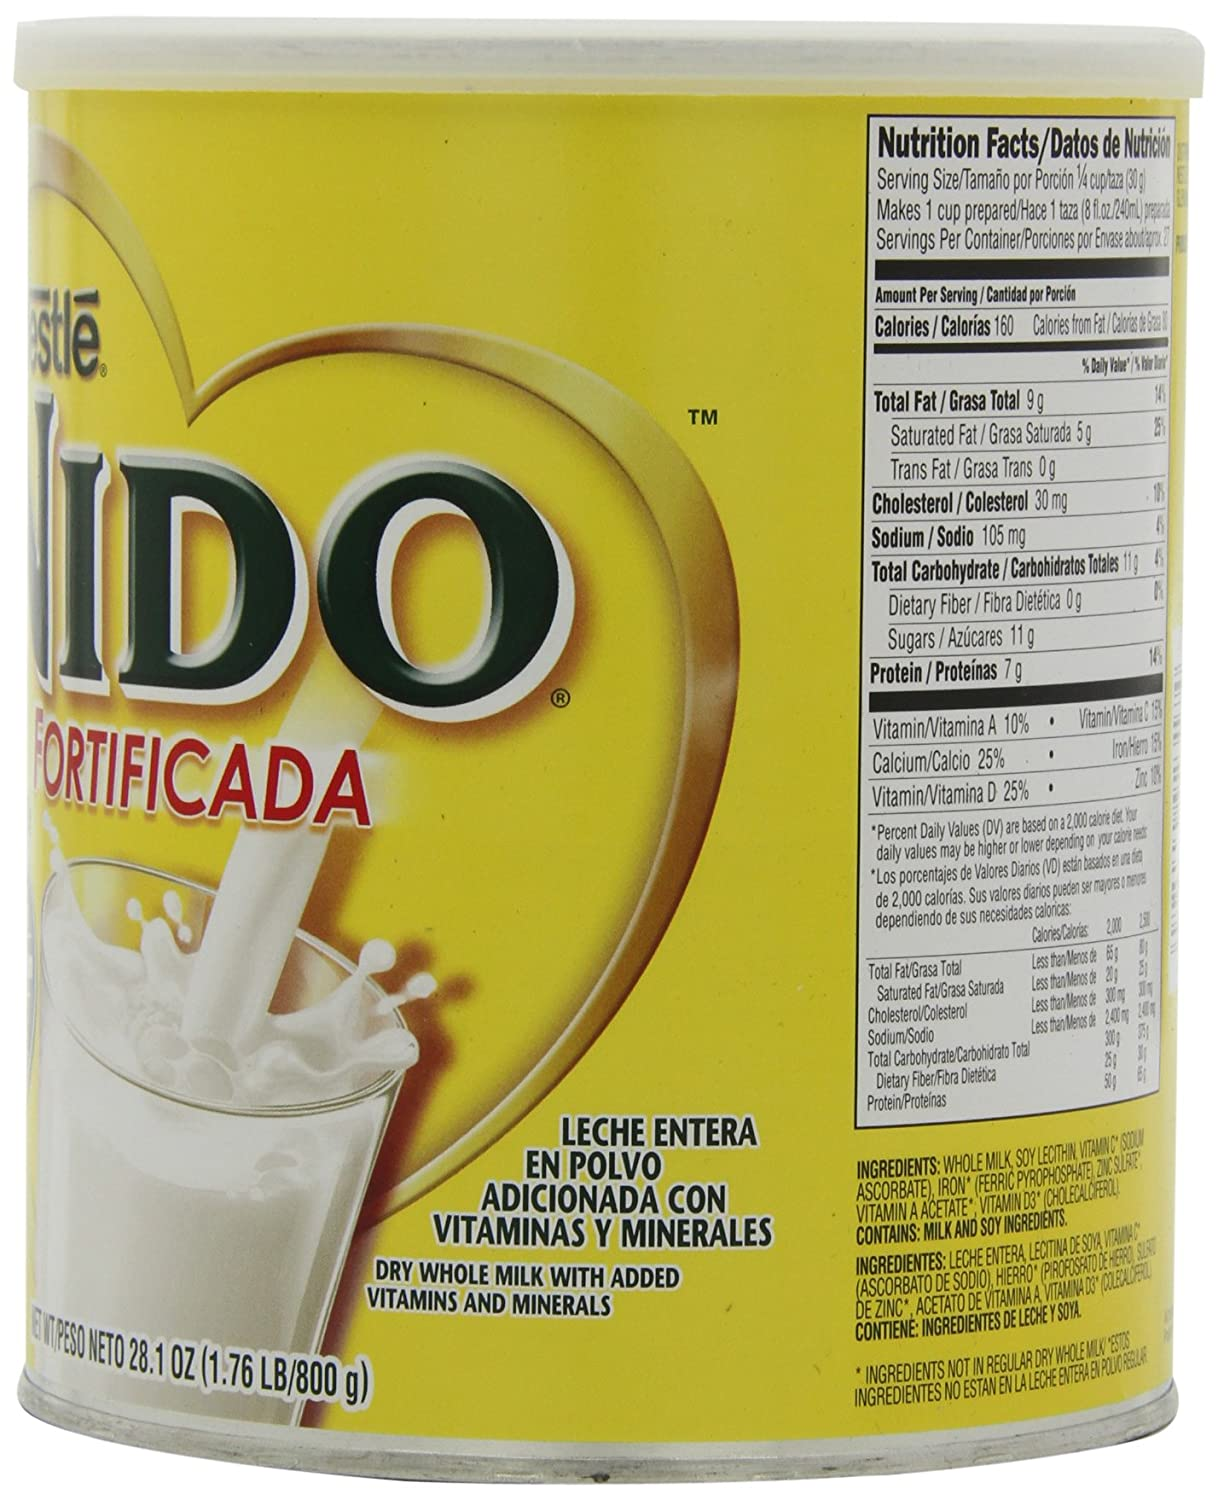 Nestle Nido Instant Dry Whole Milk Powder, Fortificada, 1.76-Pound Cans (Pack of 2)